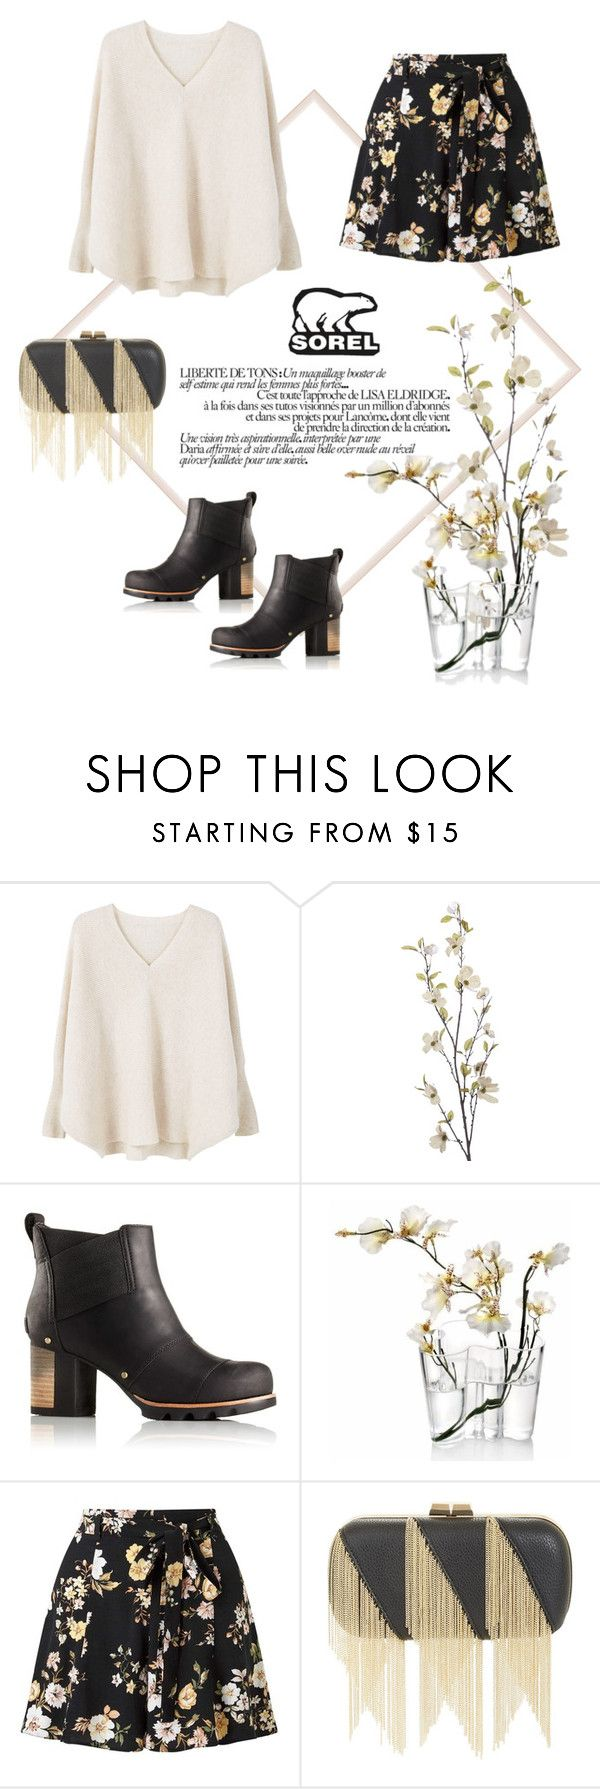 """""""Kick Up the Leaves With SOREL"""" by findself ❤ liked on Polyvore featuring MANGO, Pier 1 Imports, SOREL, iittala, Miss Selfridge, BCBGMAXAZRIA and sorelstyle"""